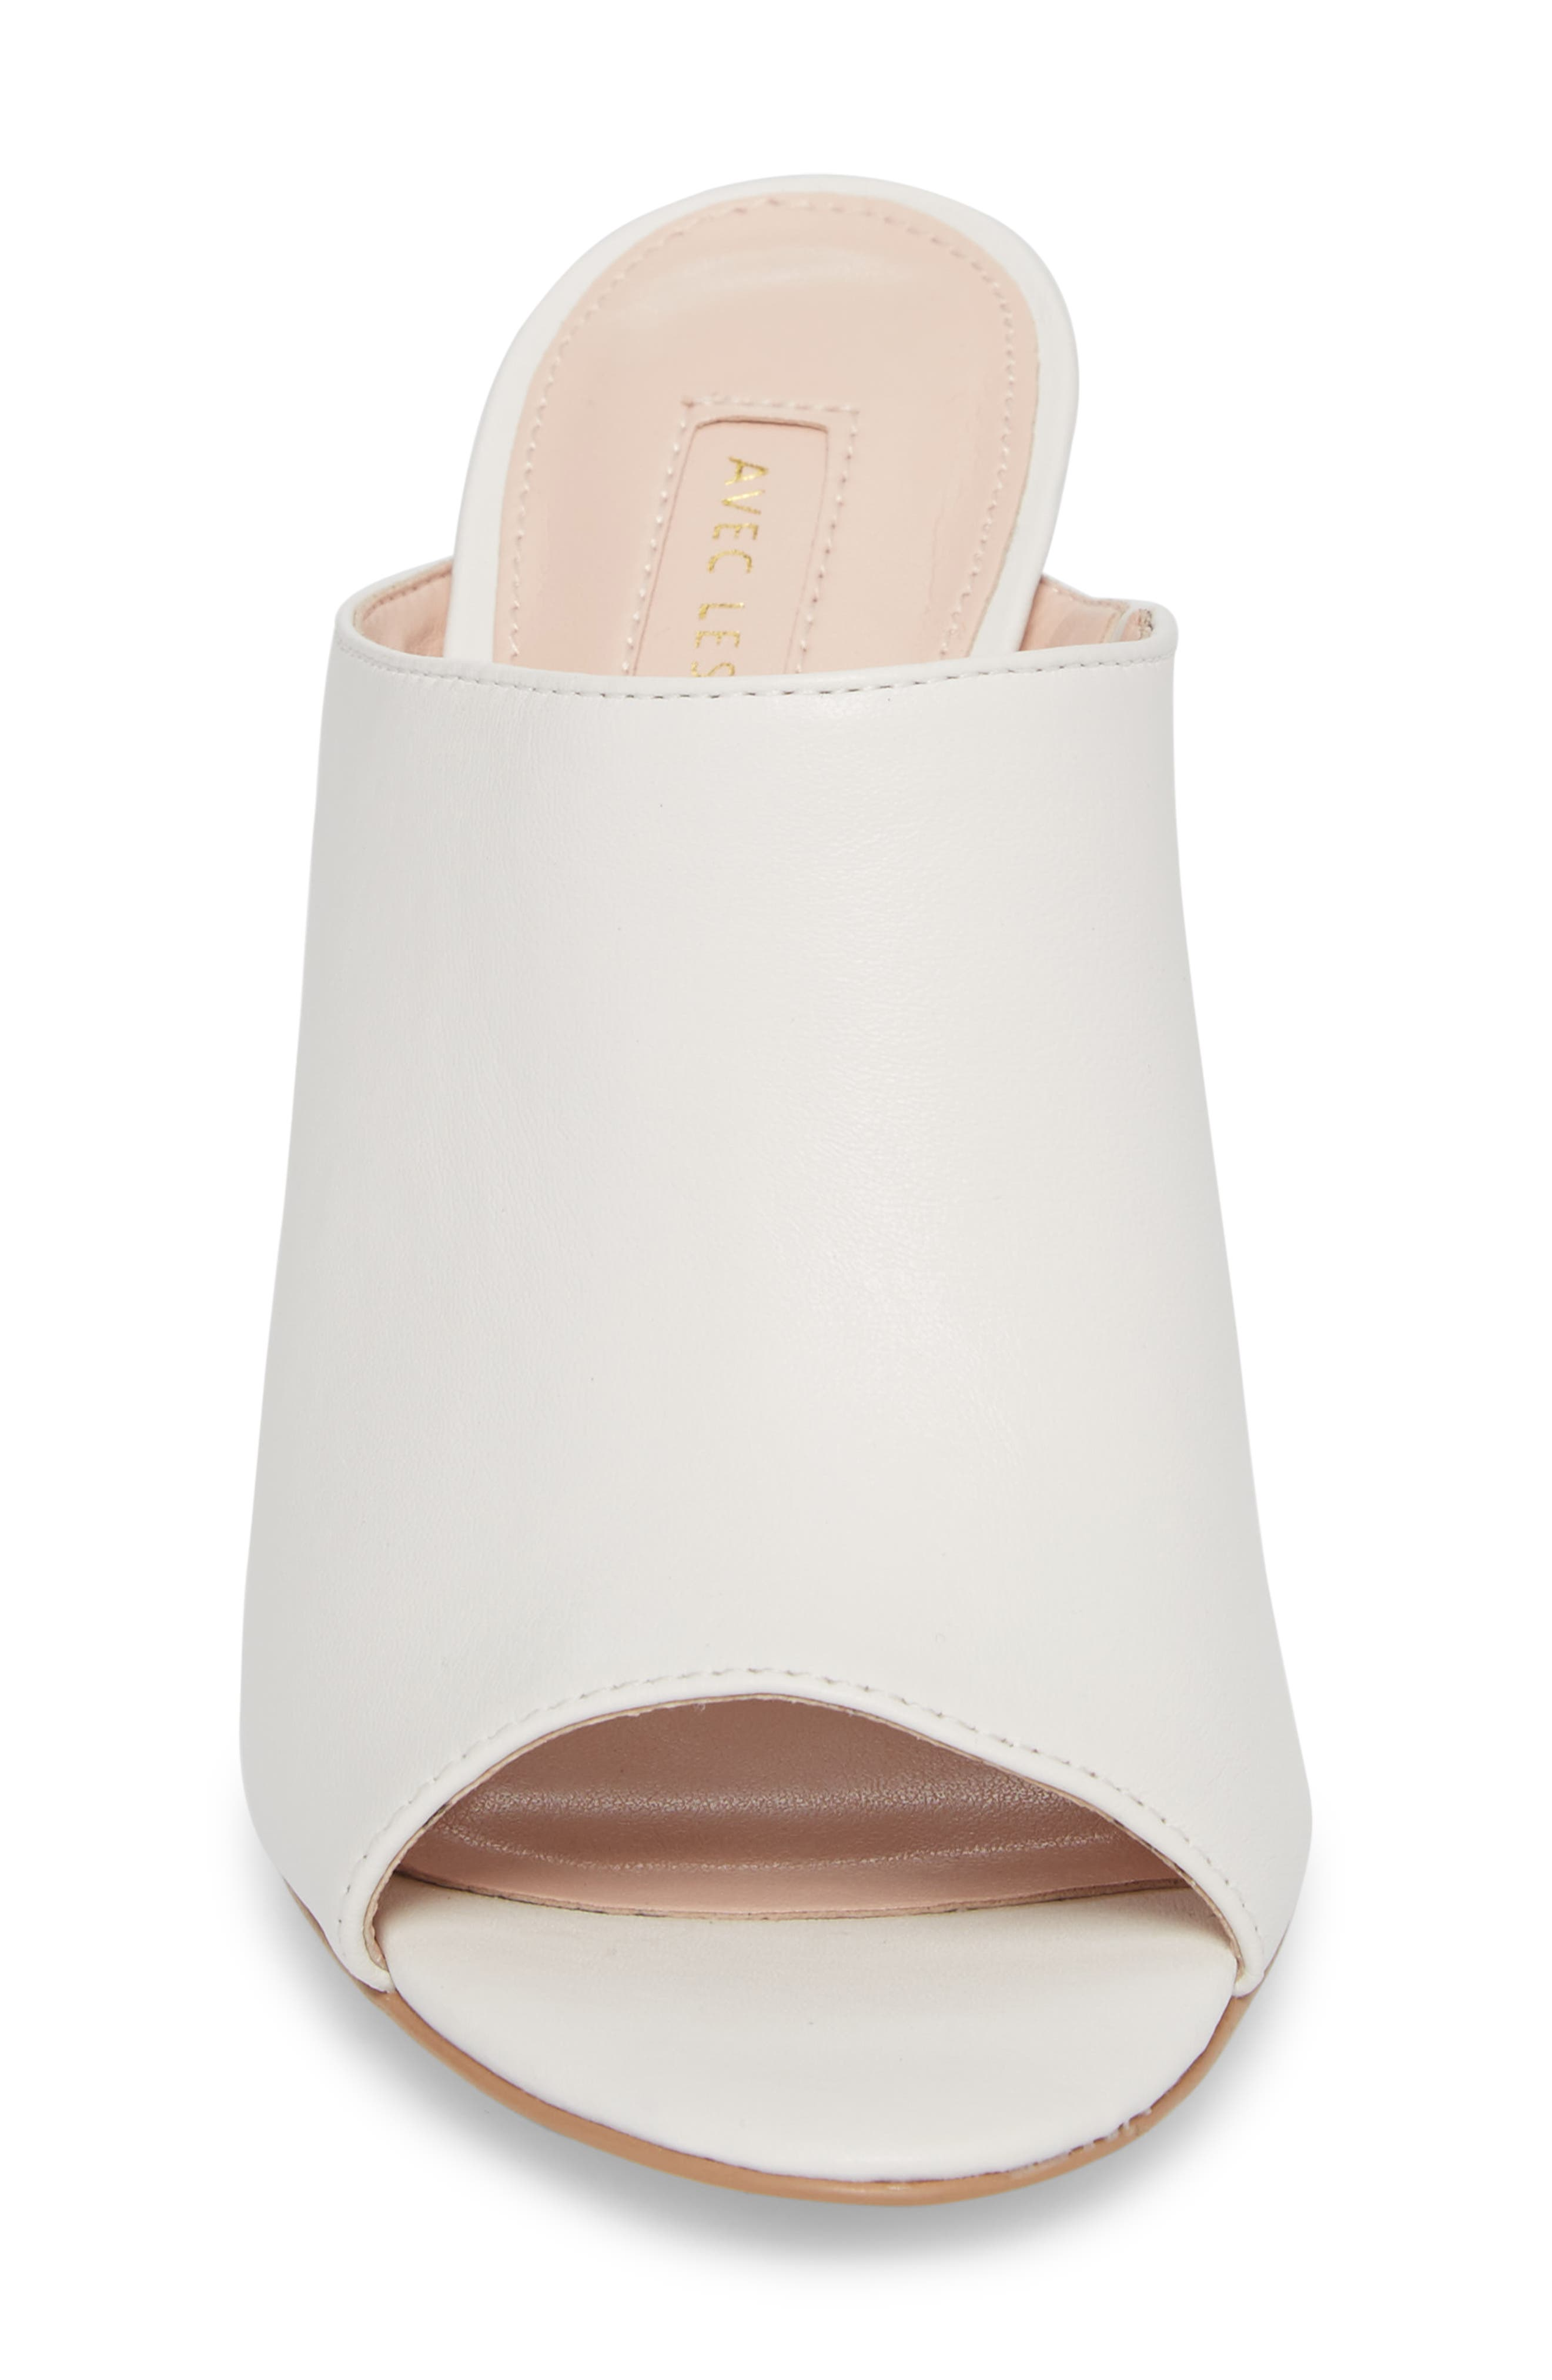 Jazz Off Sandal,                             Alternate thumbnail 4, color,                             Off White Leather